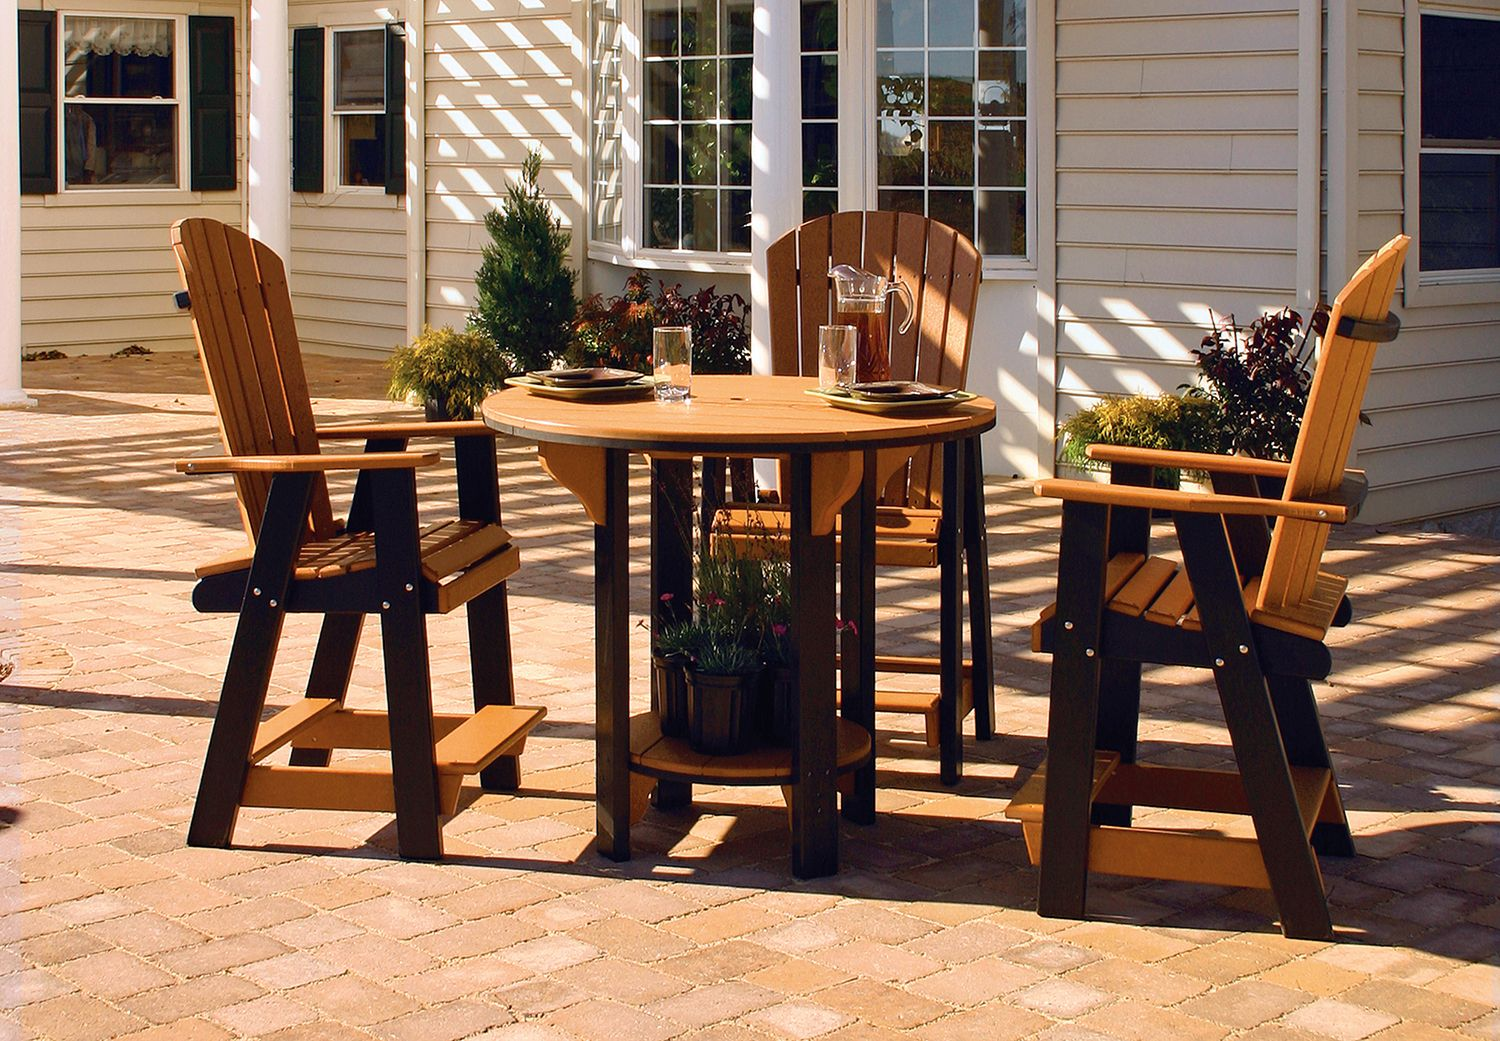 Outdoor Living Room Furniture For Your Patio Leisure Lawn Poly Outdoor Furniture Might Be Just What You Are